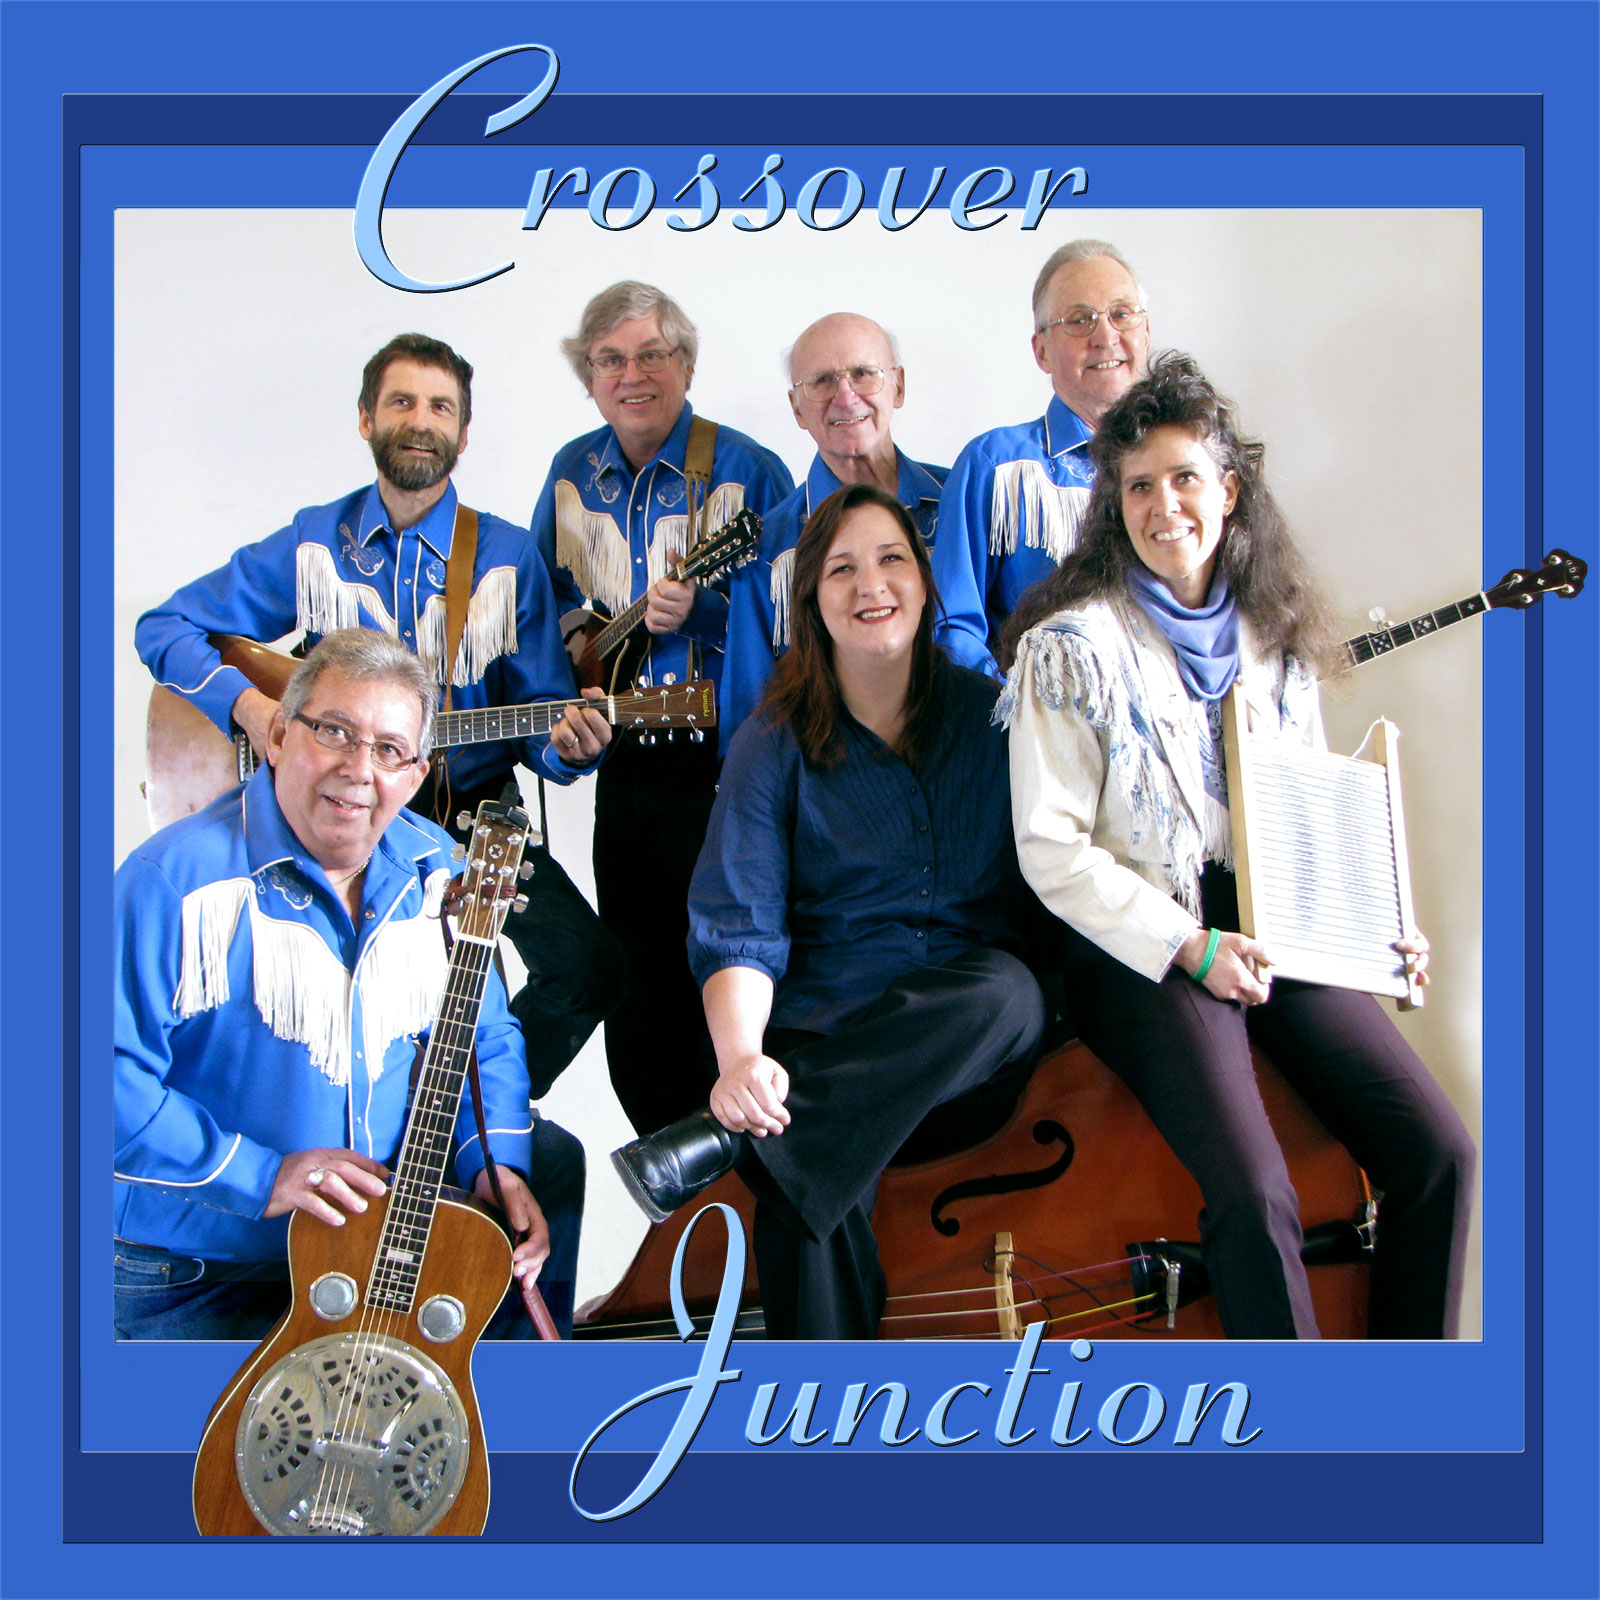 This is graphically bordered photograph of the band simply titled CROSSOVER JUNCTION